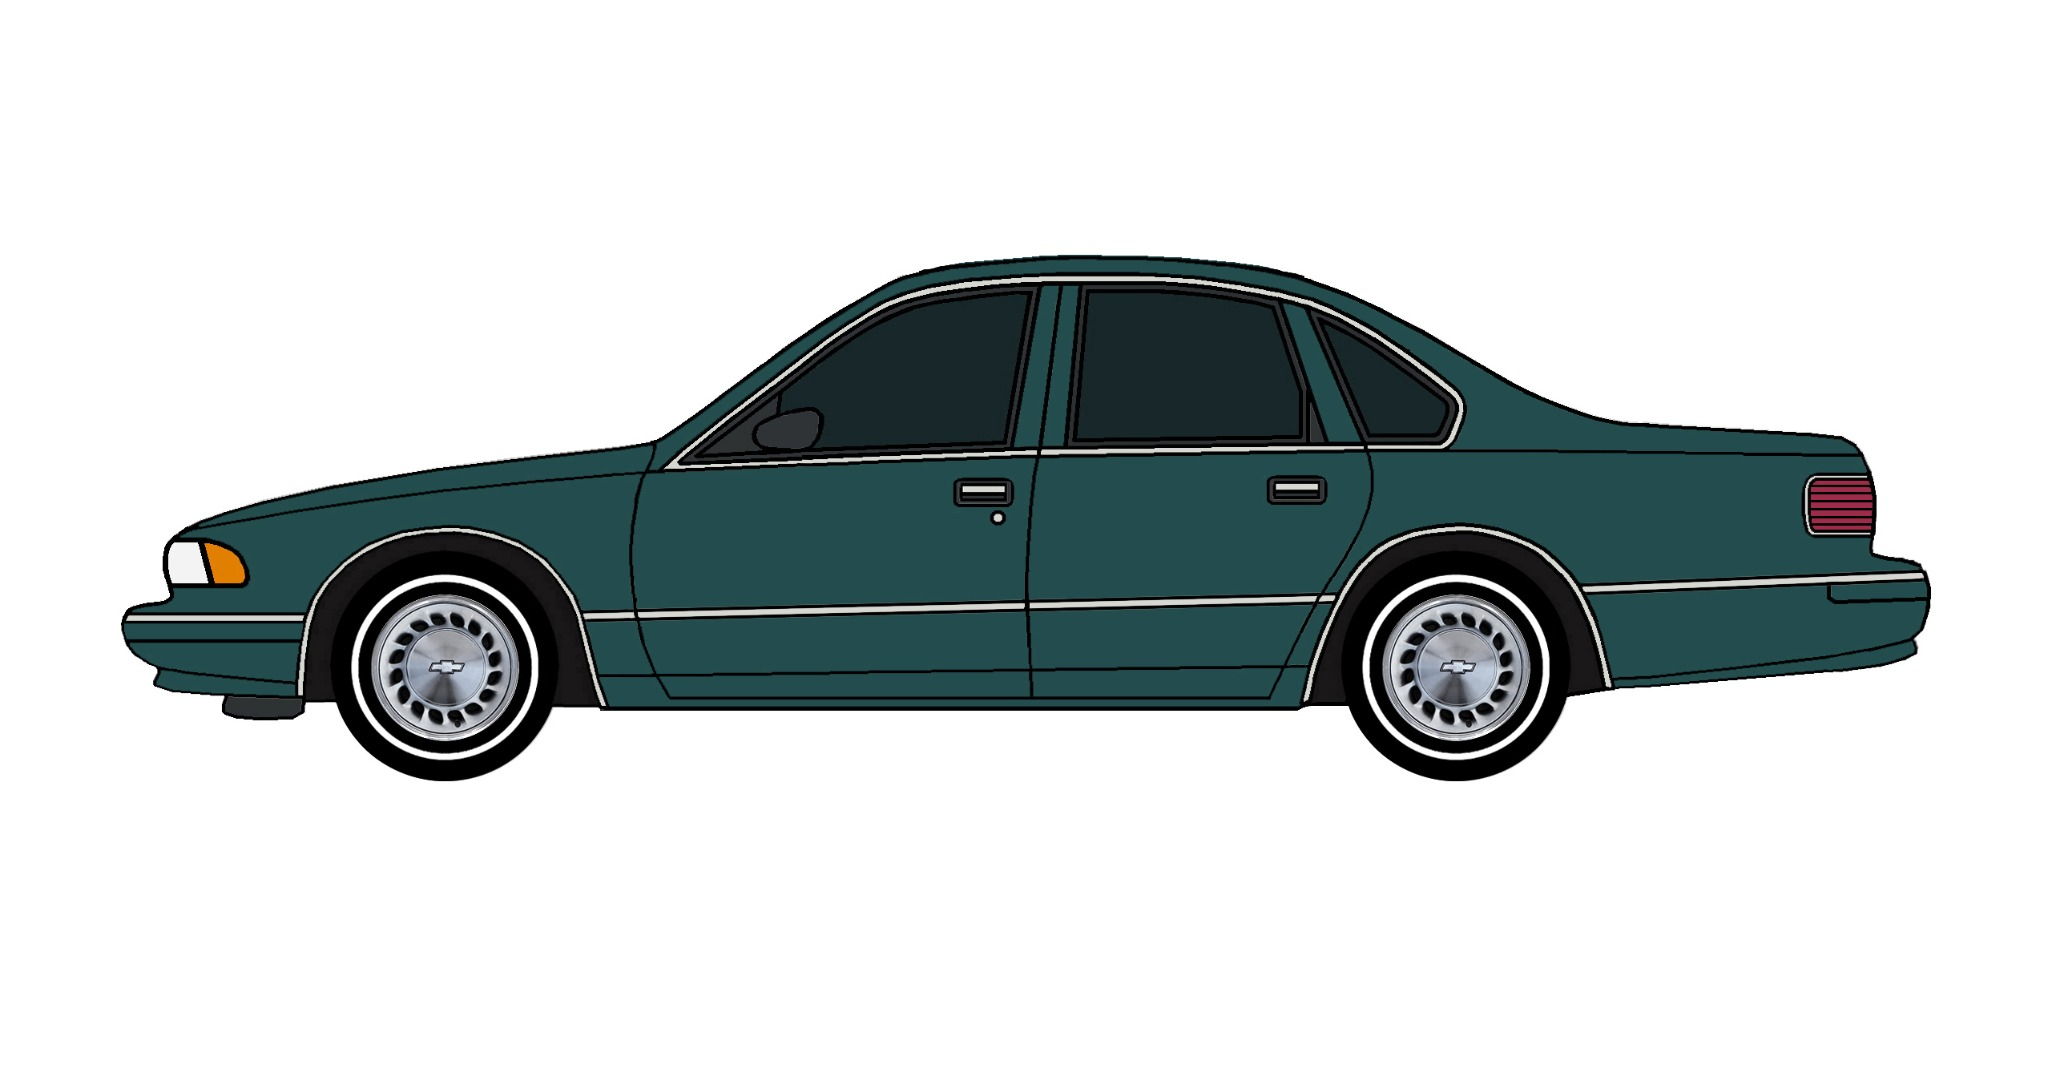 1996 Chevy Caprice TEAL